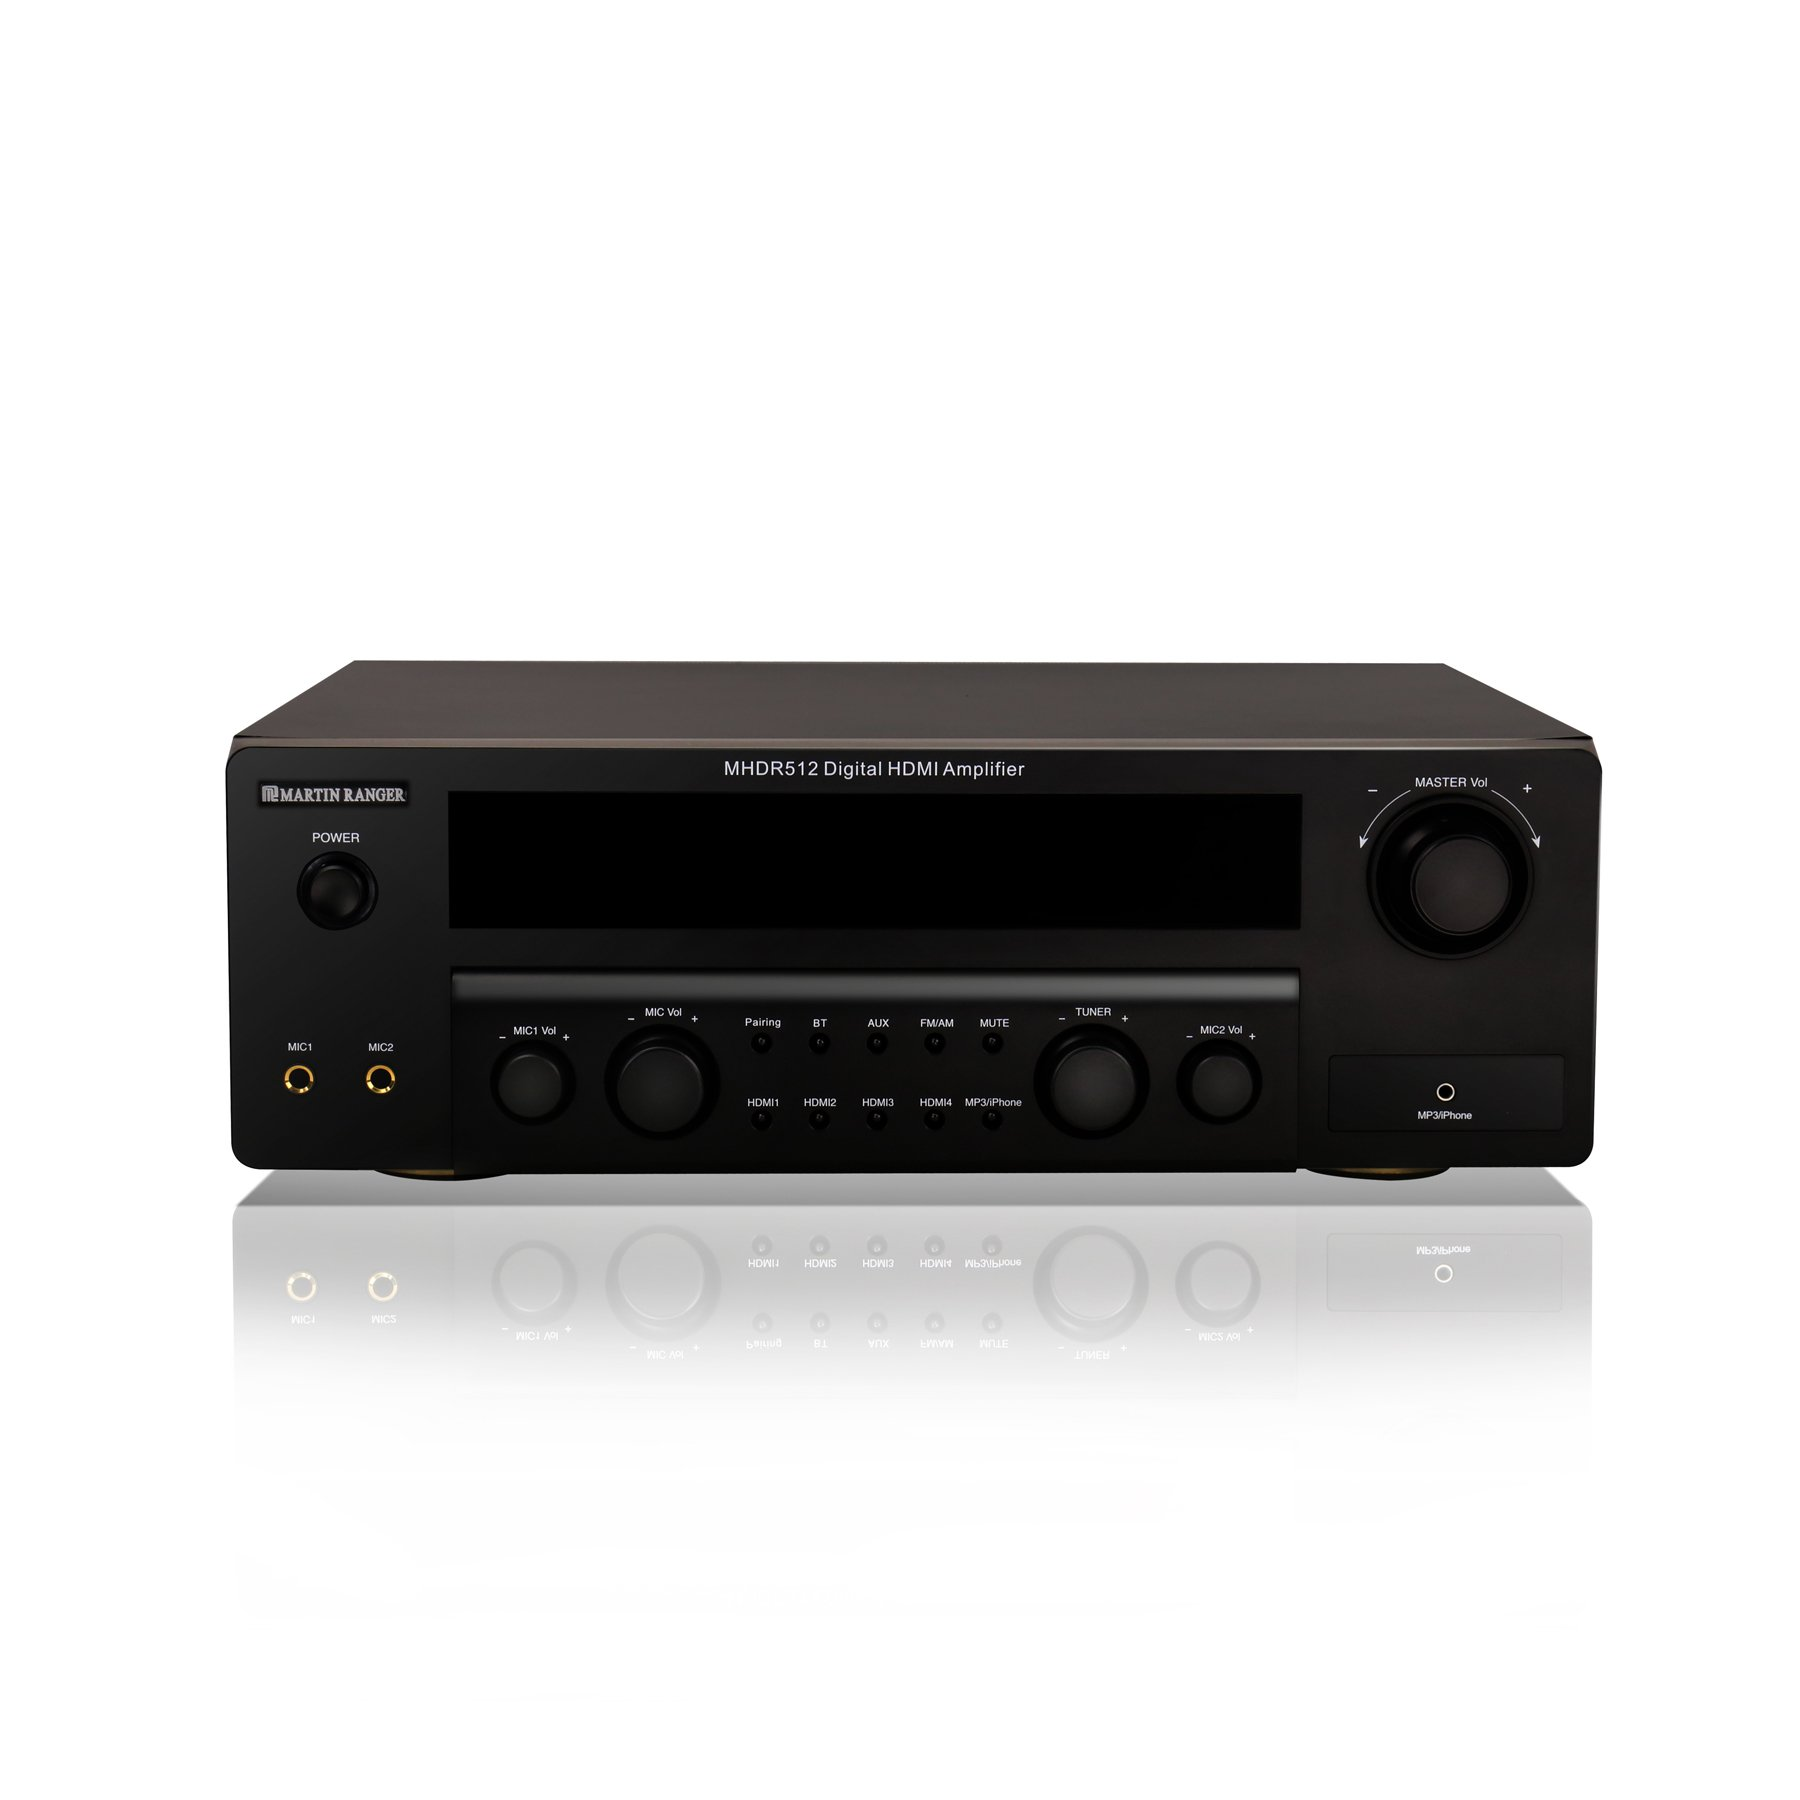 HDMI (2160P/4K) ARC 5.1 Channel Built-in Bluetooth V4.0 Digital Amplifier with VFD Display